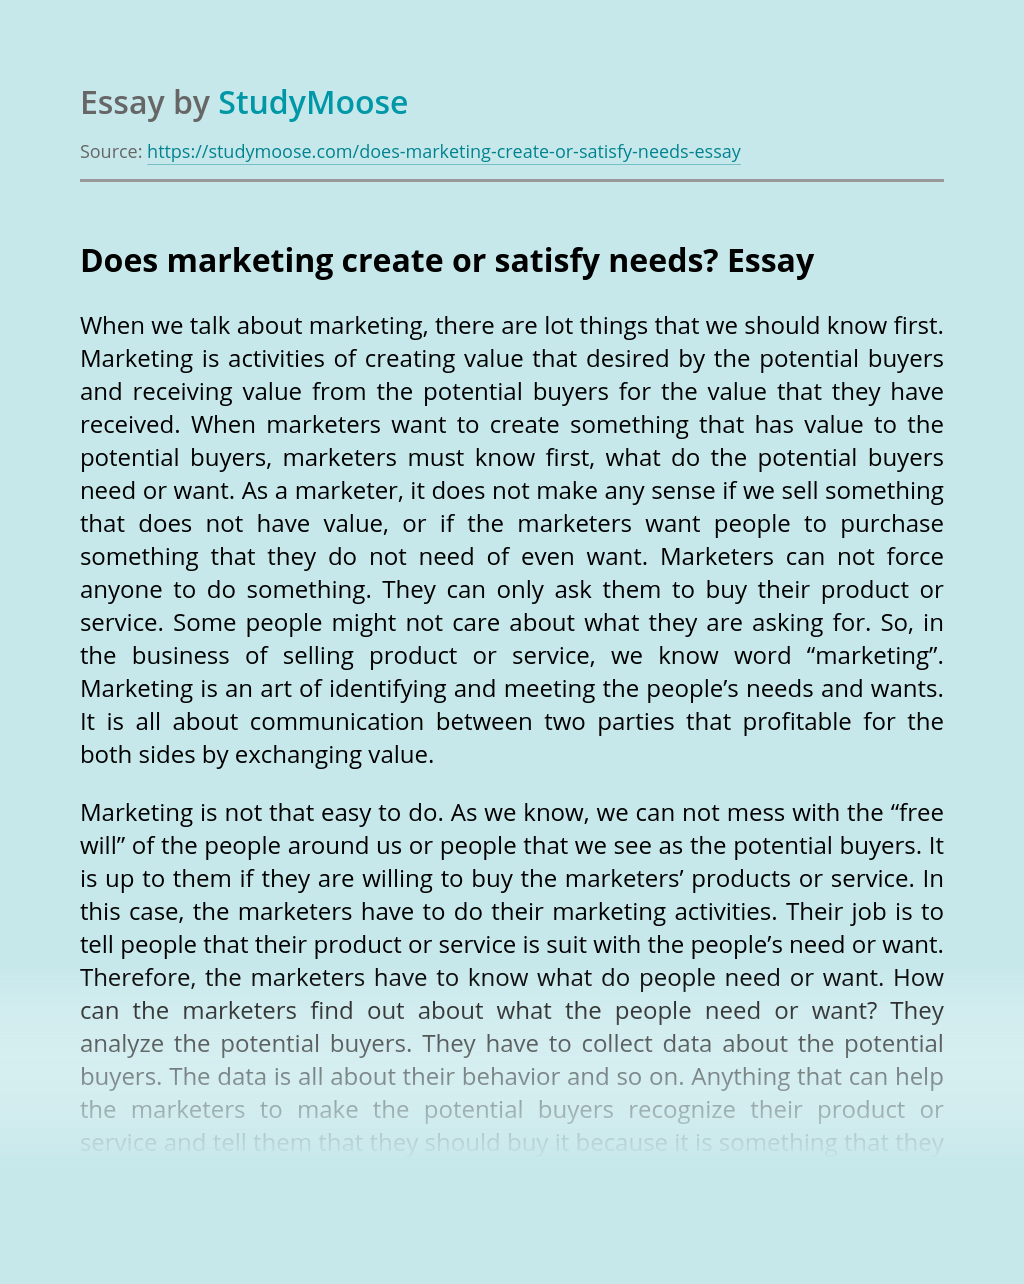 Does marketing create or satisfy needs?